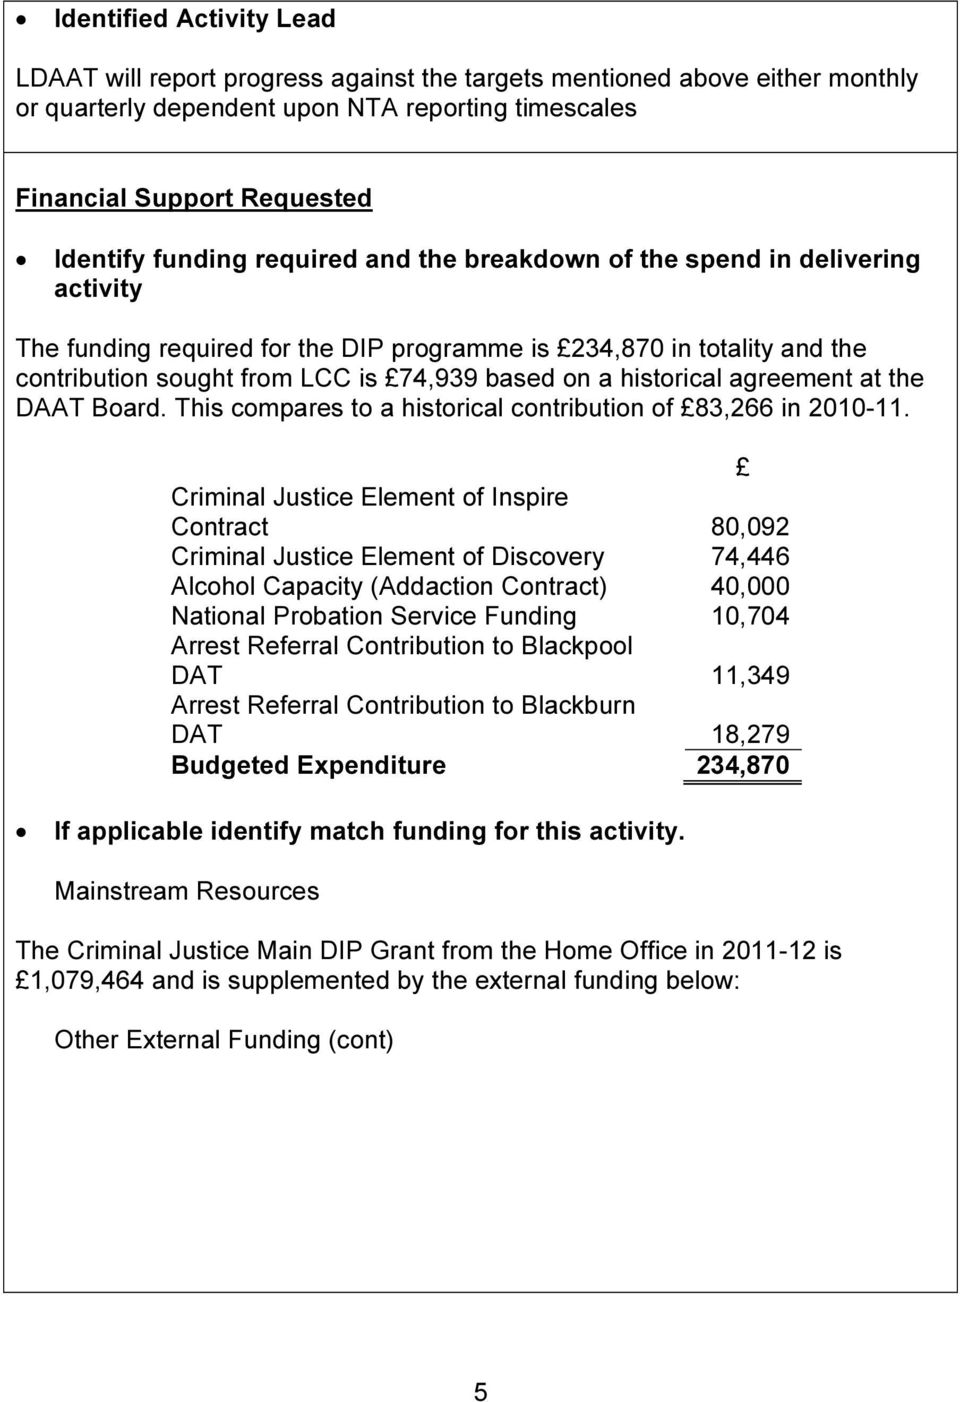 historical agreement at the DAAT Board. This compares to a historical contribution of 83,266 in 2010-11.